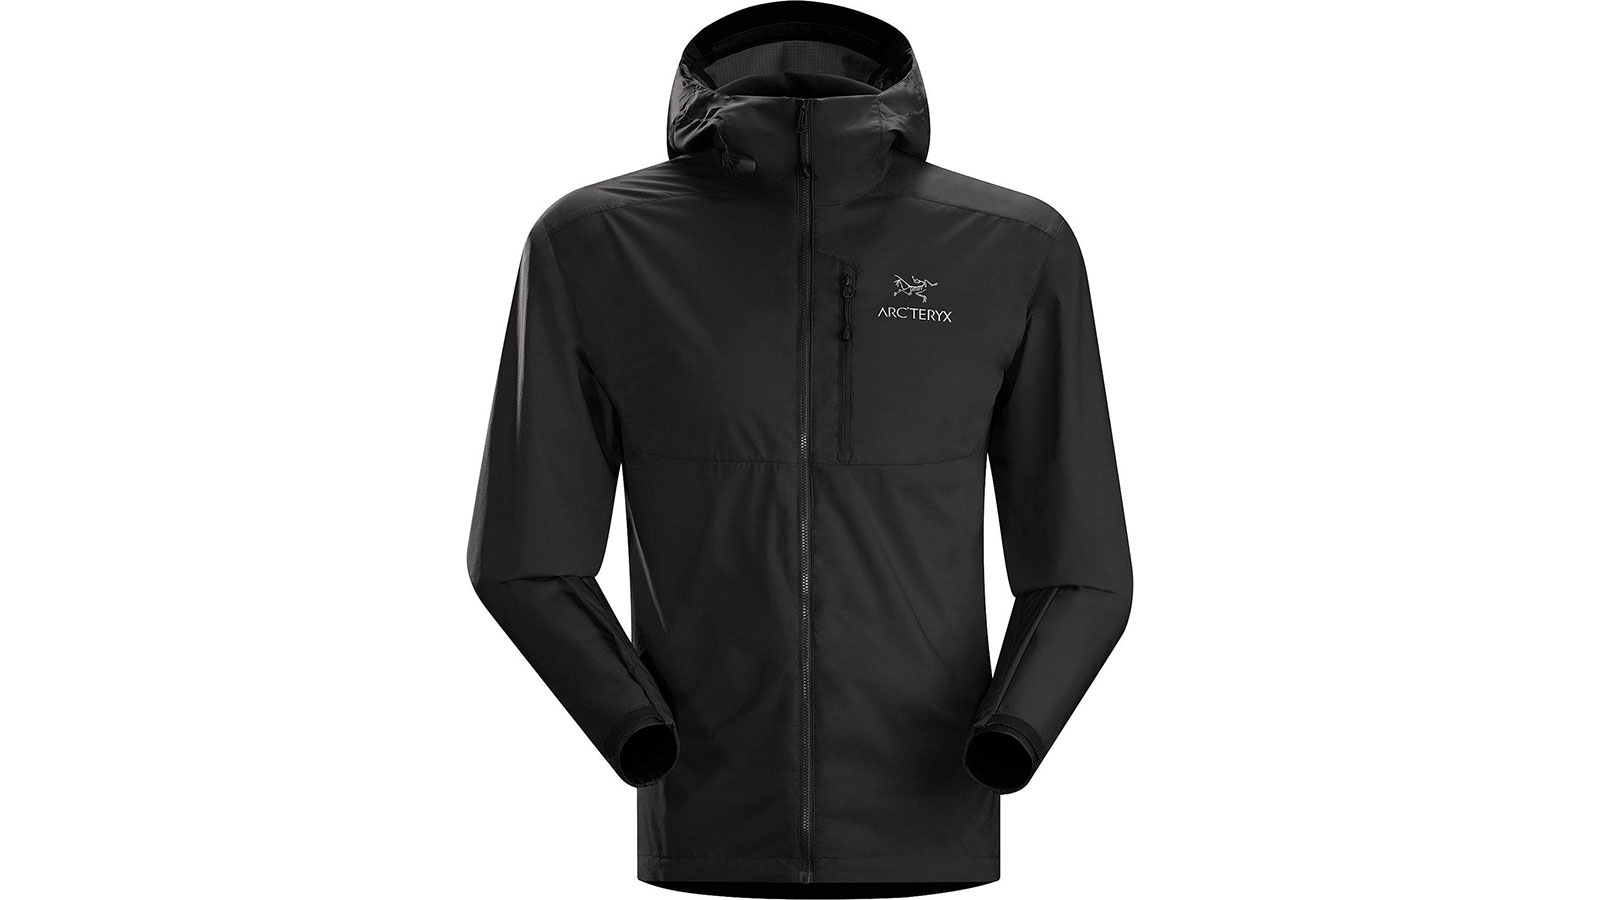 Arc'teryx Squamish Hoody Men's Windbreaker Jacket | the best men's windbreakr jackets